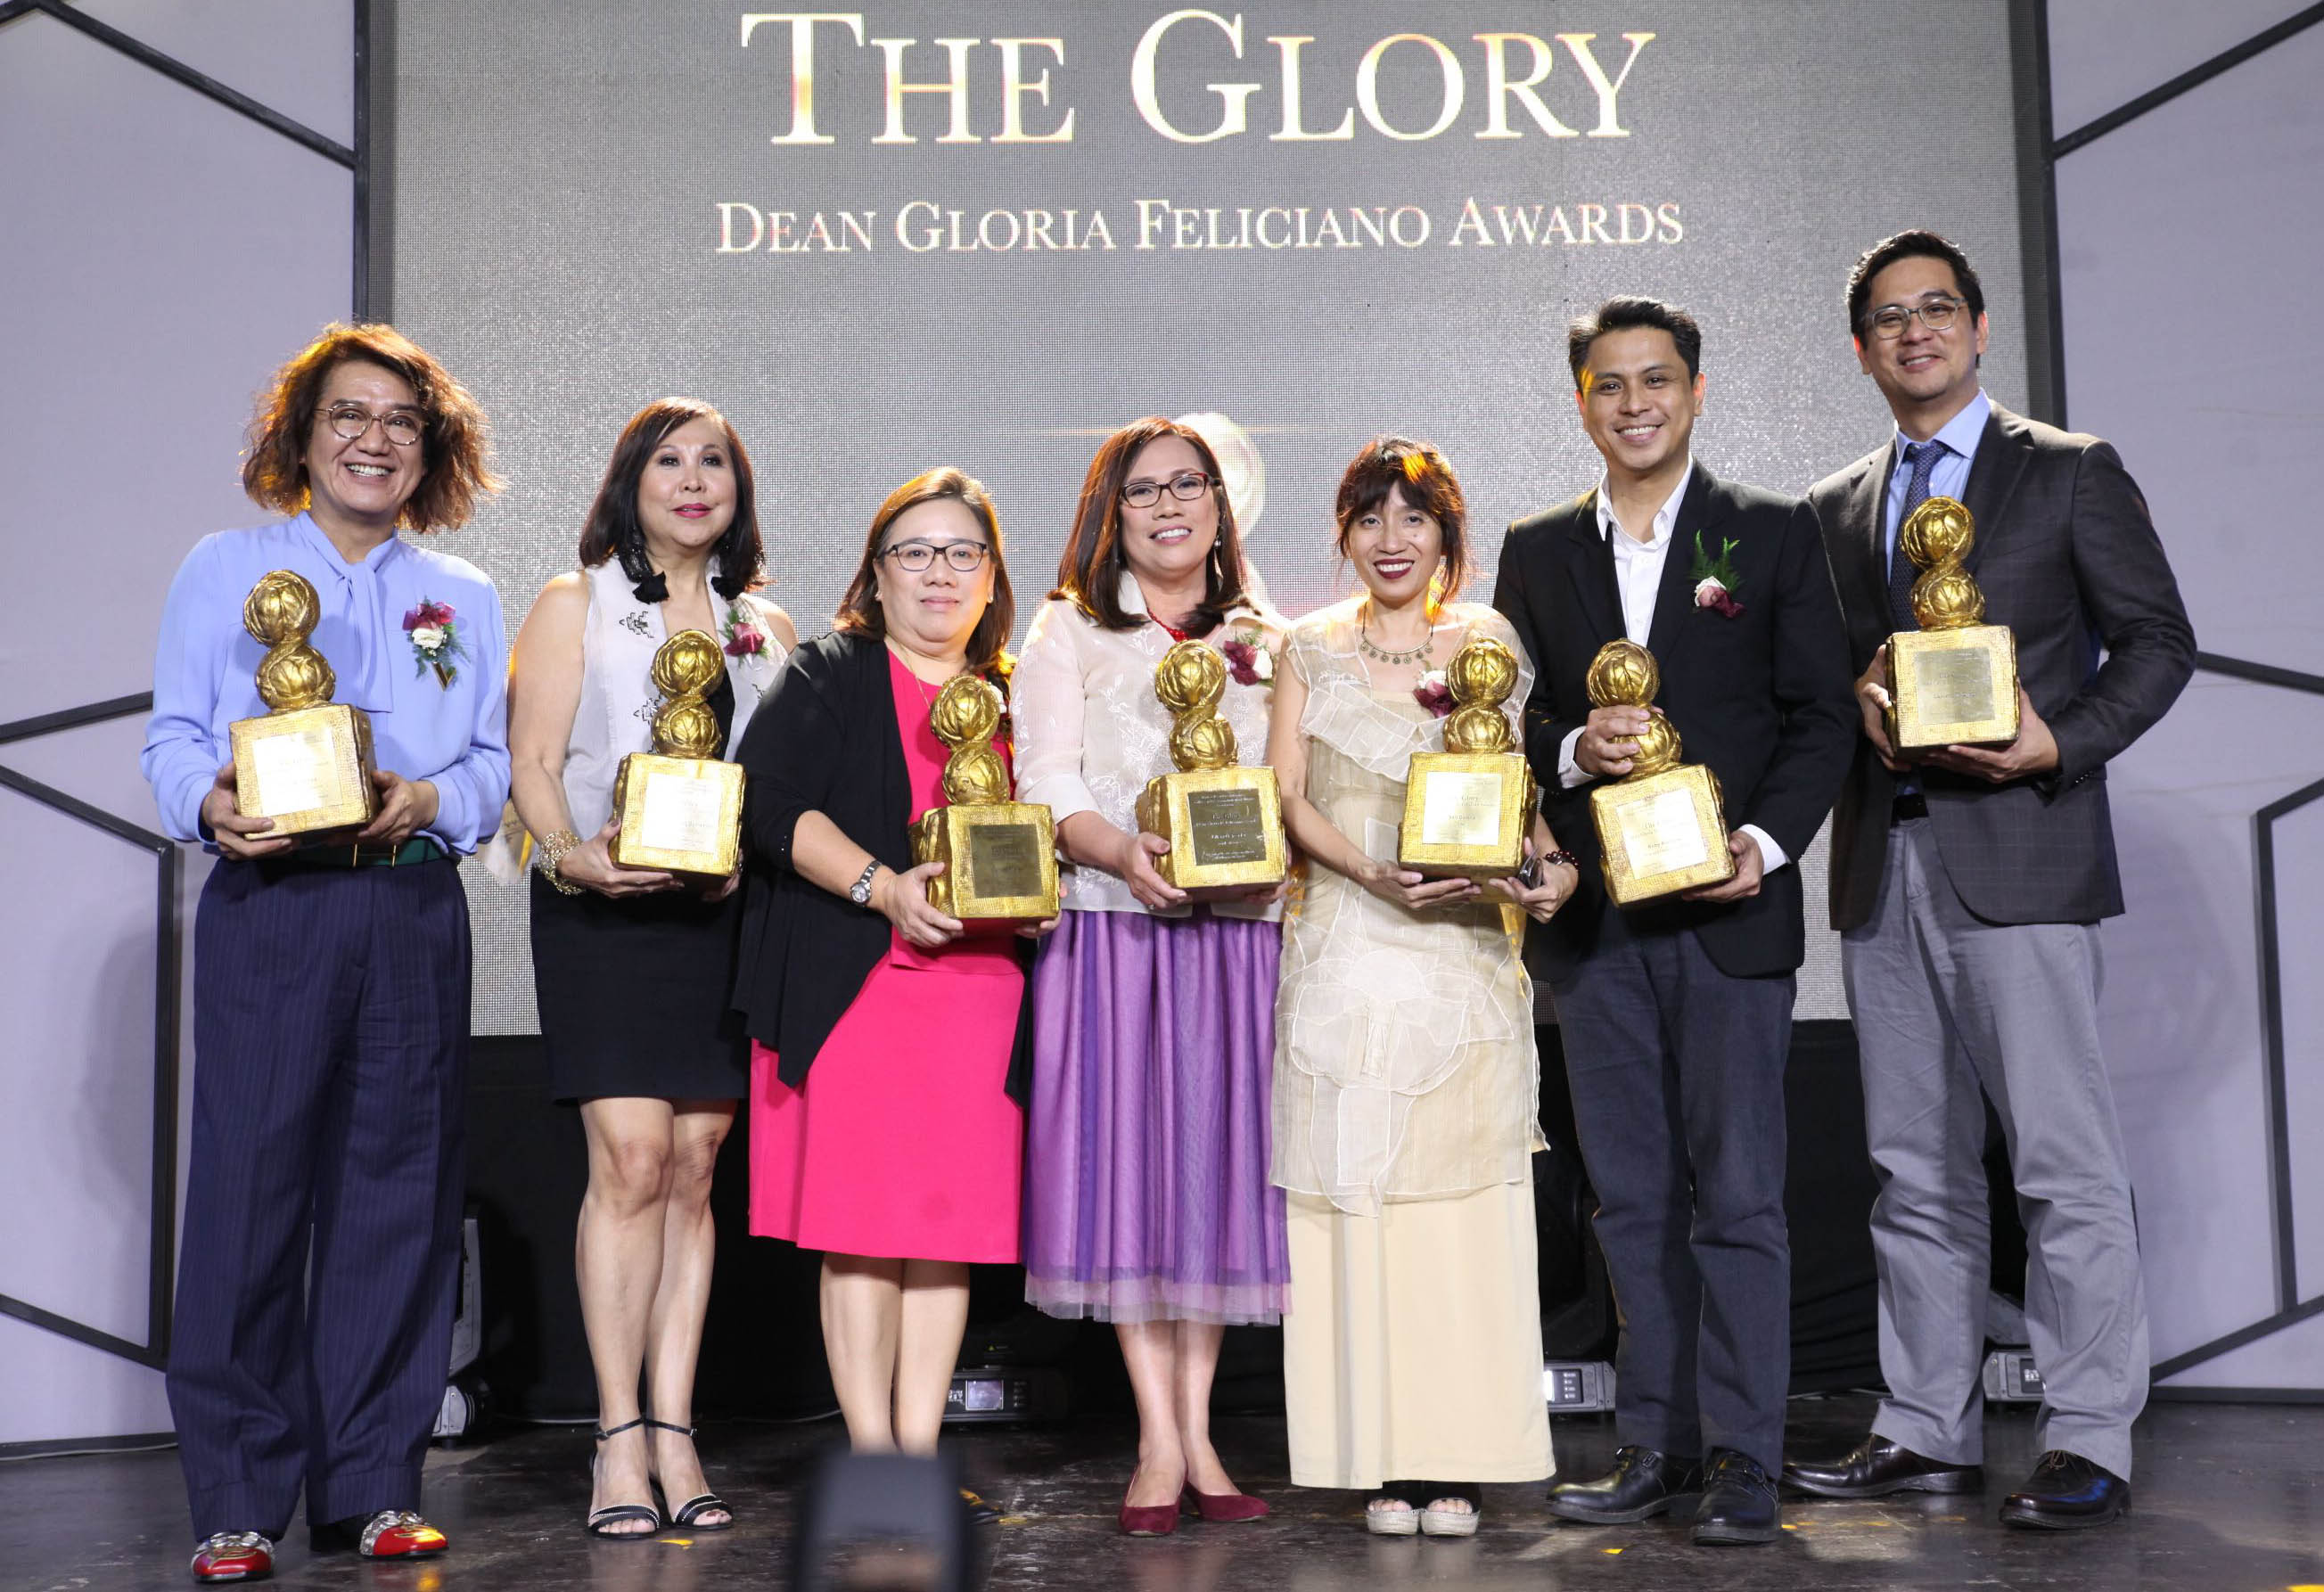 OUTSTANDING ALUMNI. 1st Glory Awards recipients (from left) Raul Castro, Christine Joycelyn Lumawig-Buensalido, Marissa La Torre Flores, Lan Mercado, Sari Raissa Lluch Dalena, Jose Roberto Alampay, and Laurenti Dyogi; not at the event is Jose Hernani David. Photo courtesy of Bernard Testa